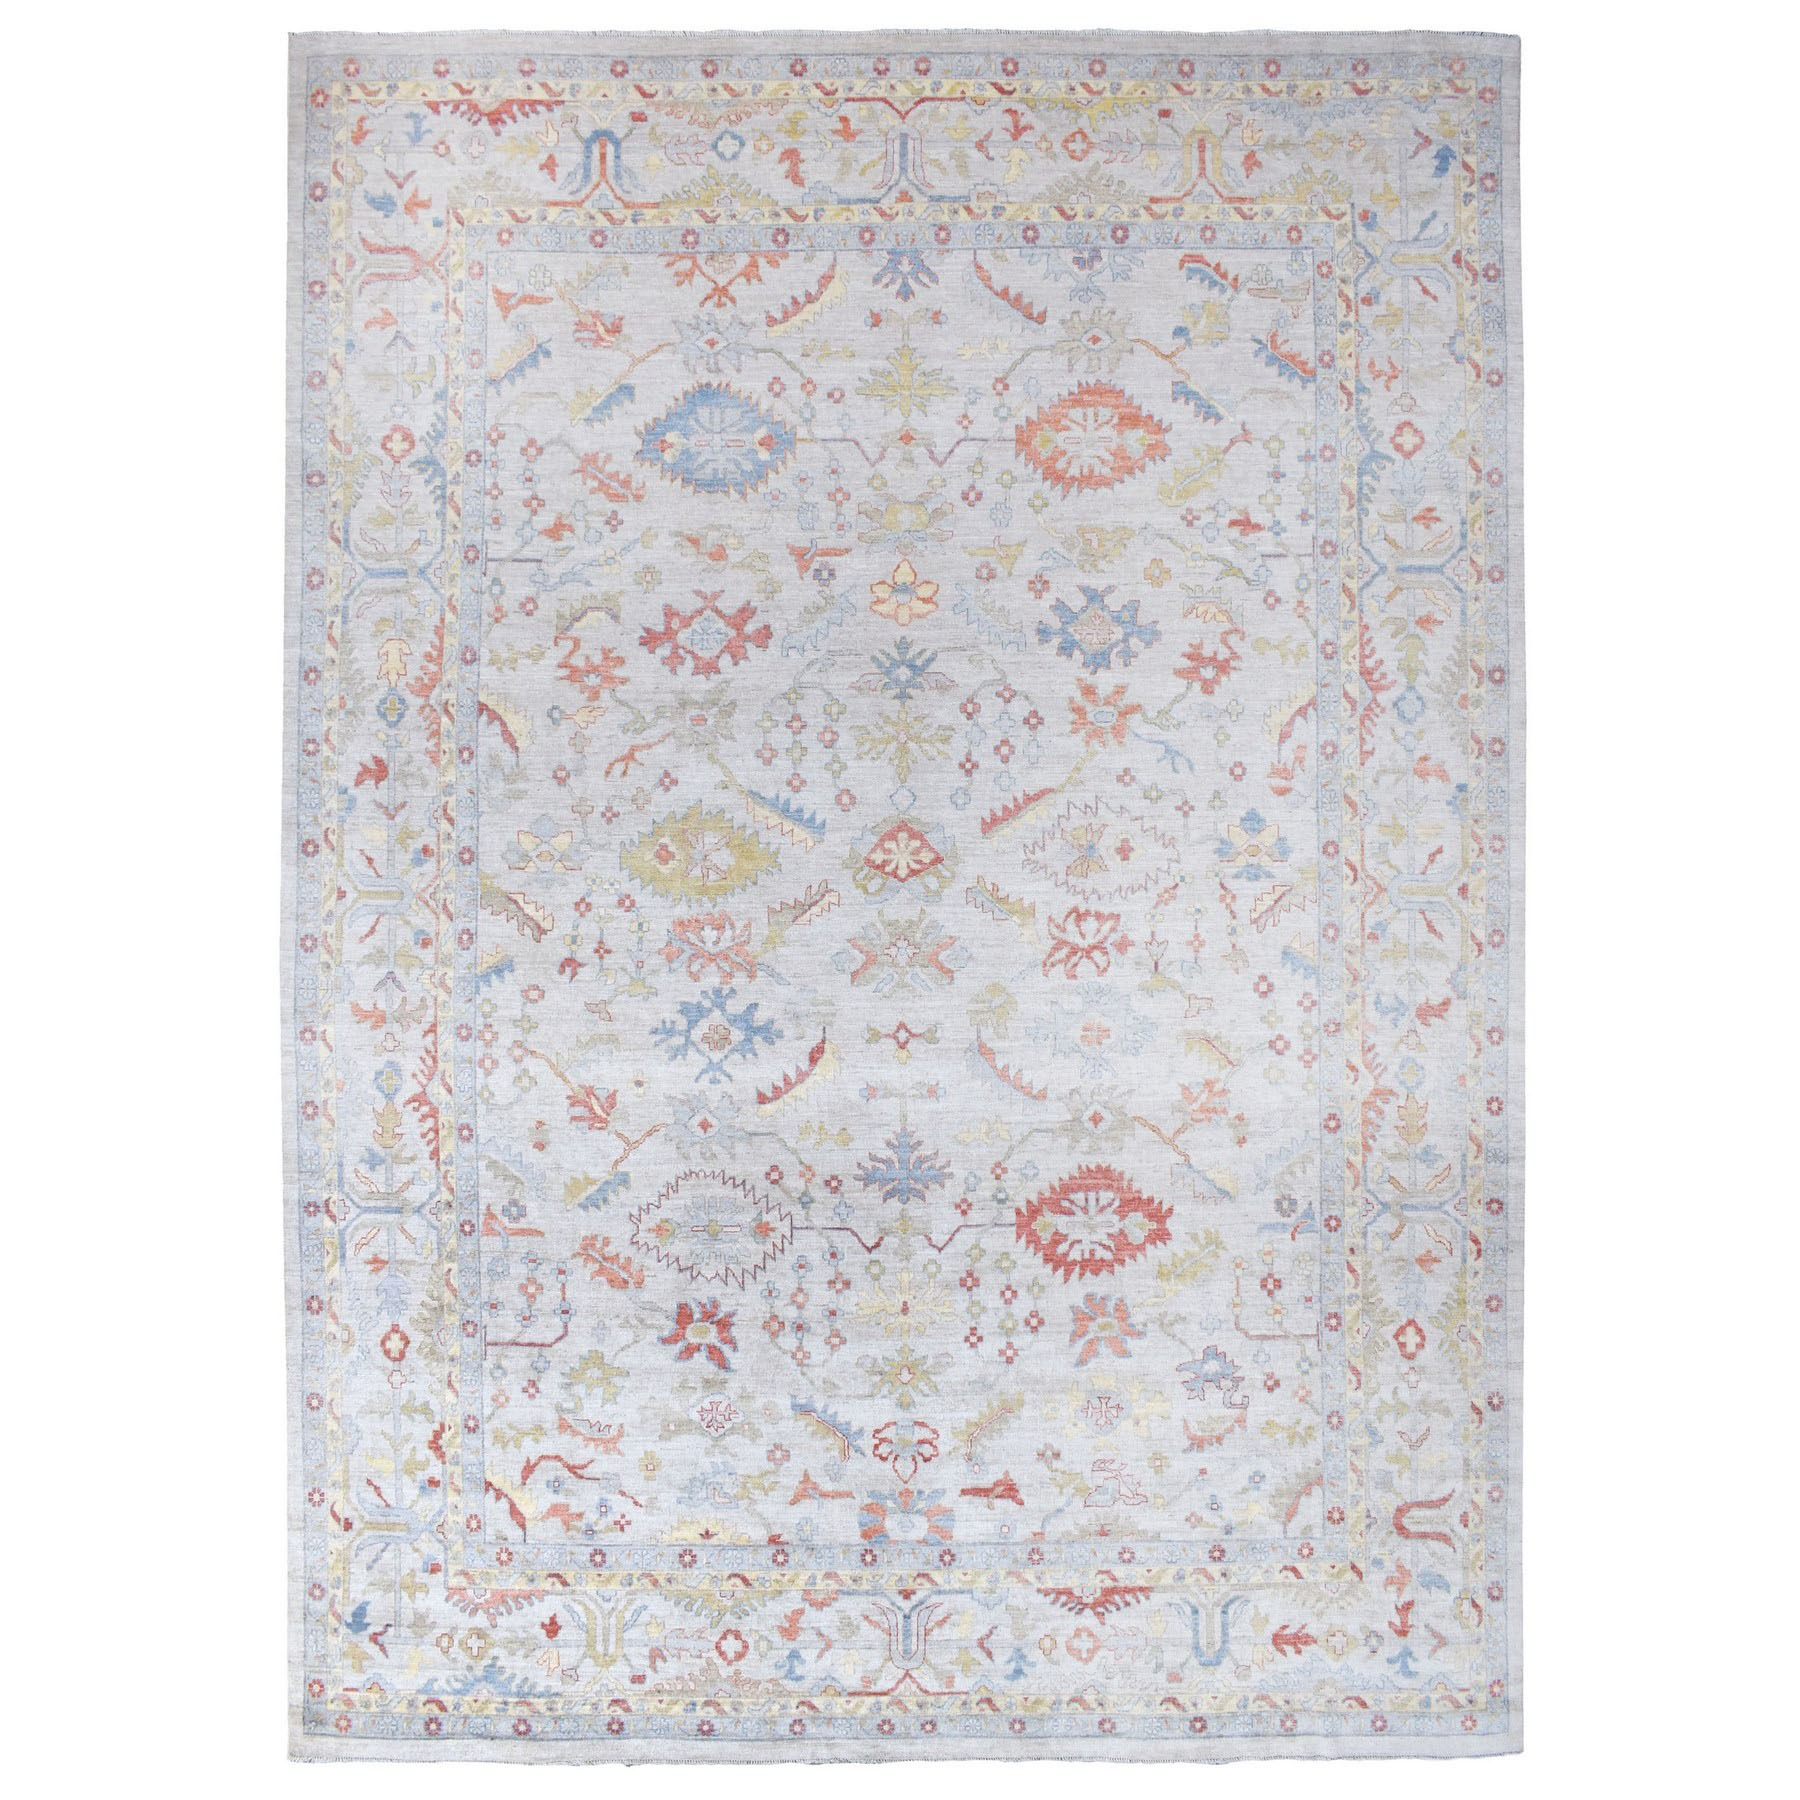 Oushak And Peshawar Rugs LUV609732